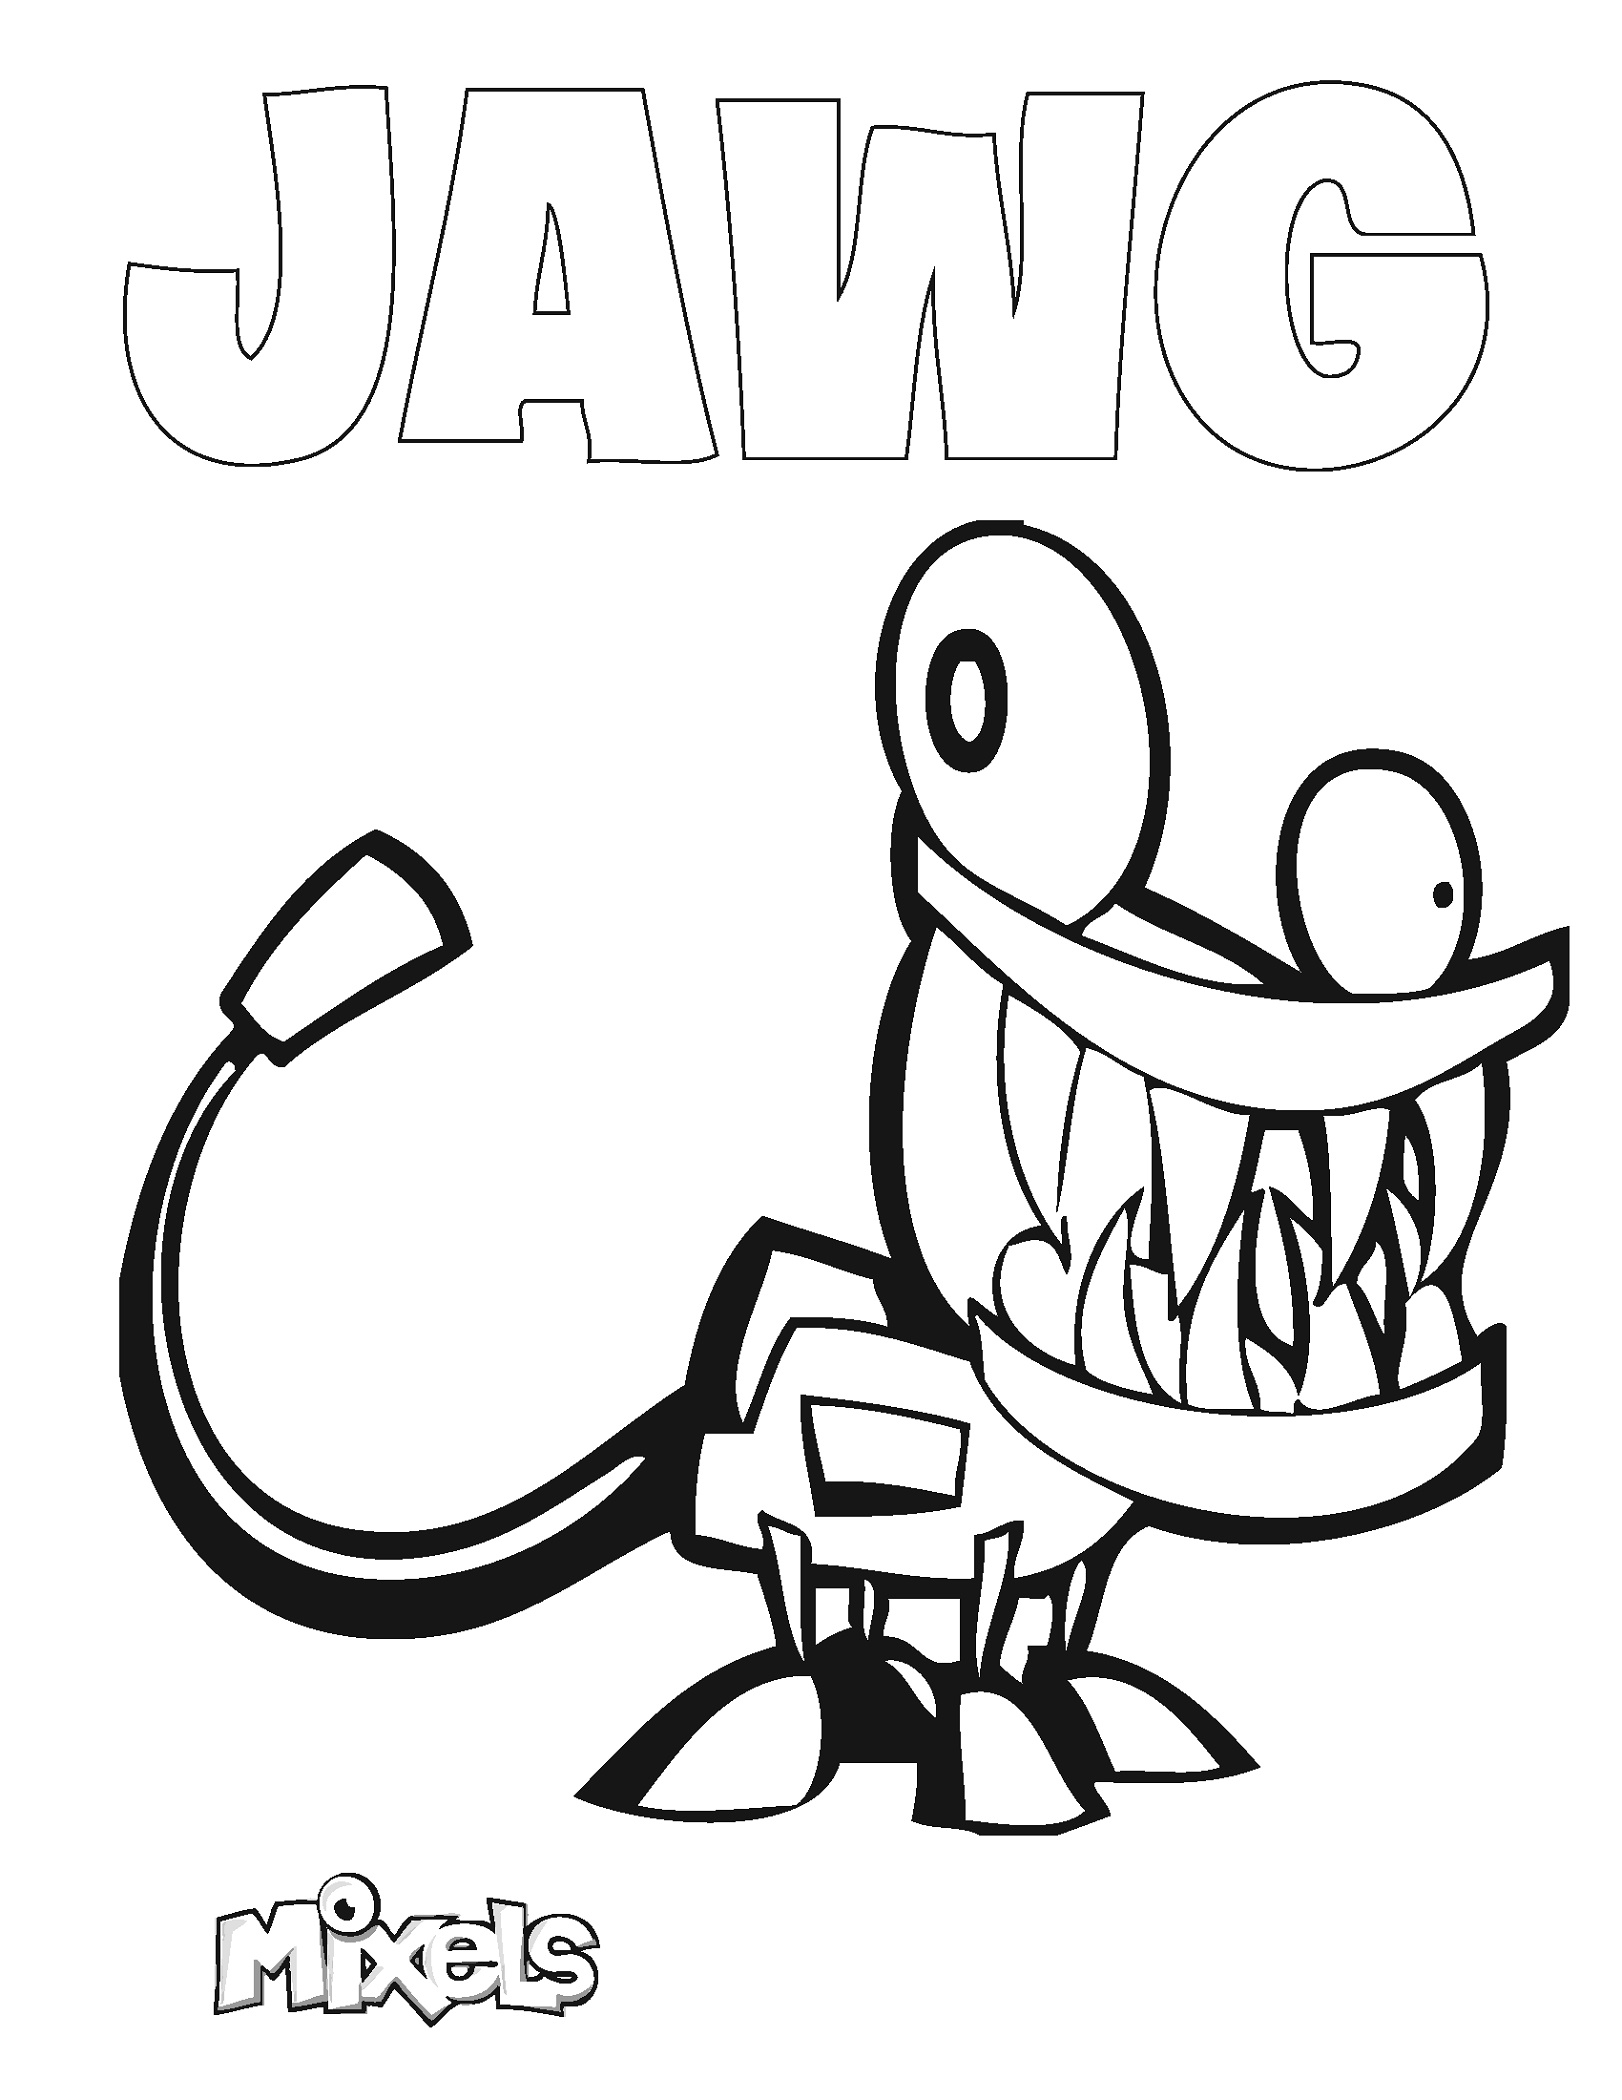 Mixels Coloring Pages Jawg